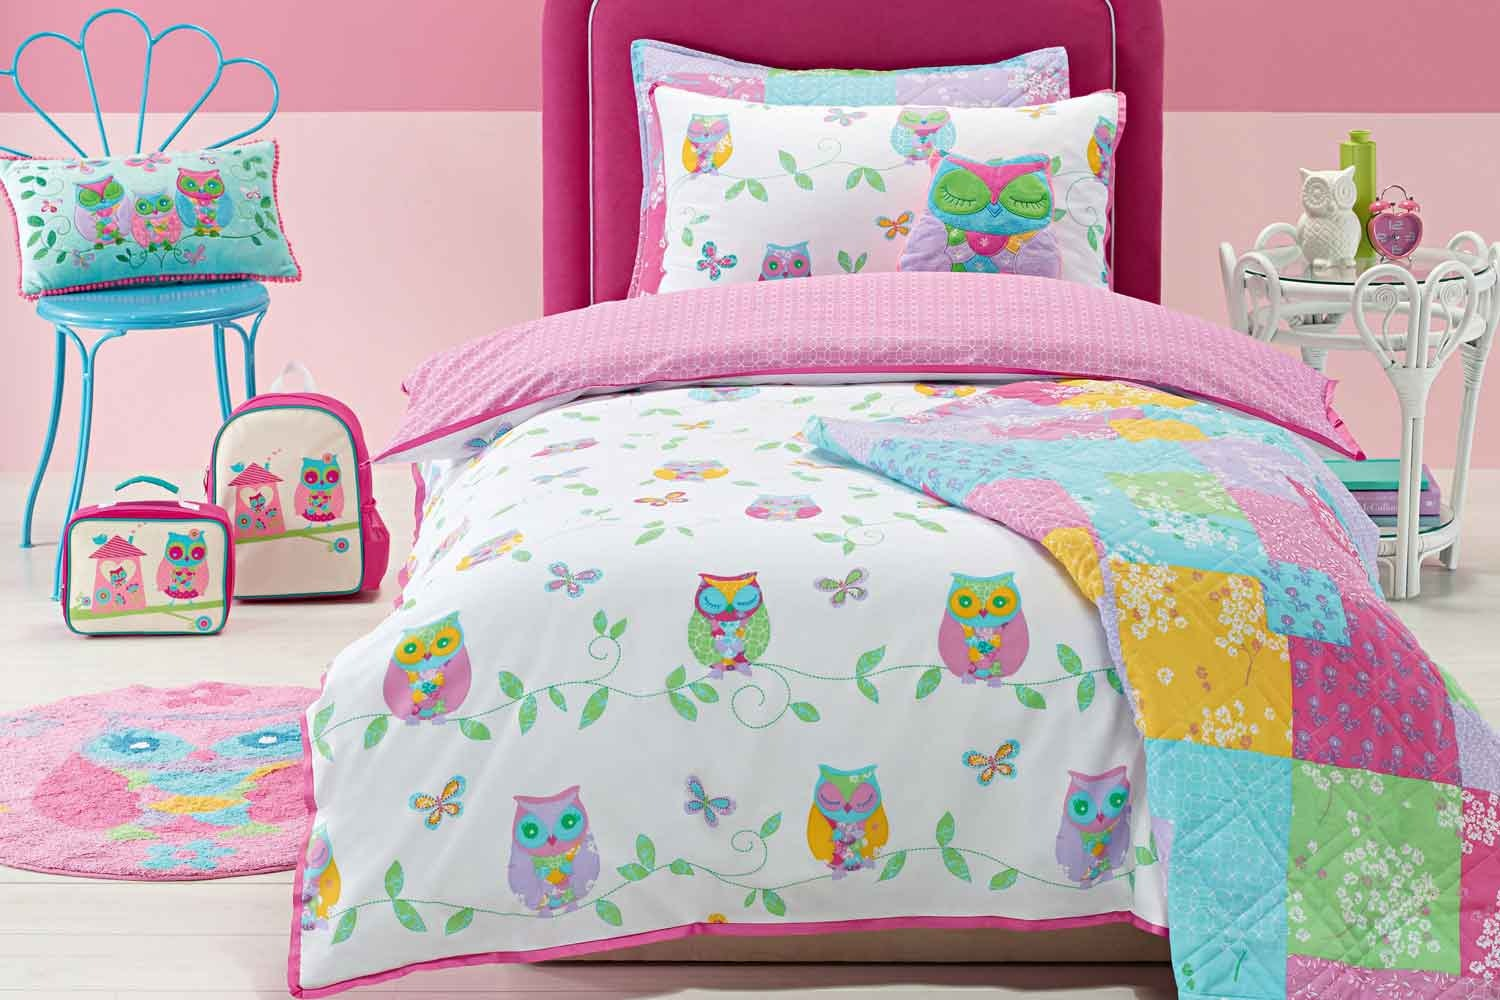 Kid's Duvet Cover